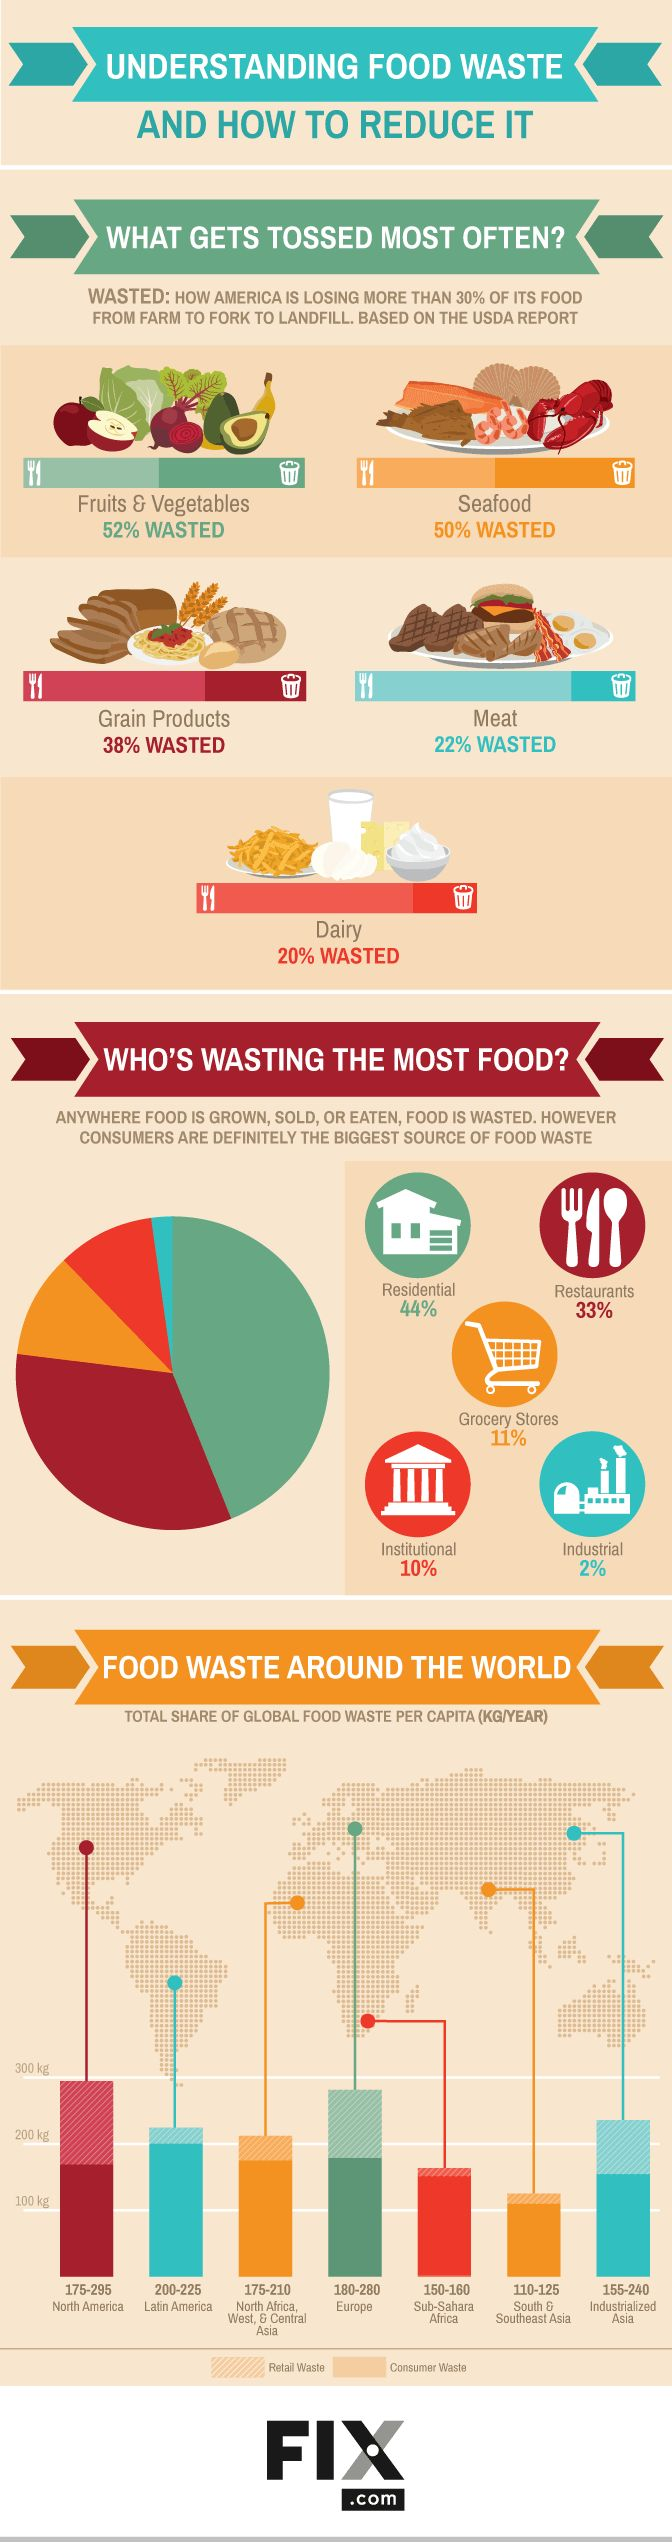 Understanding Food Waste And How To Reduce It #Infographic #Food #HowTo